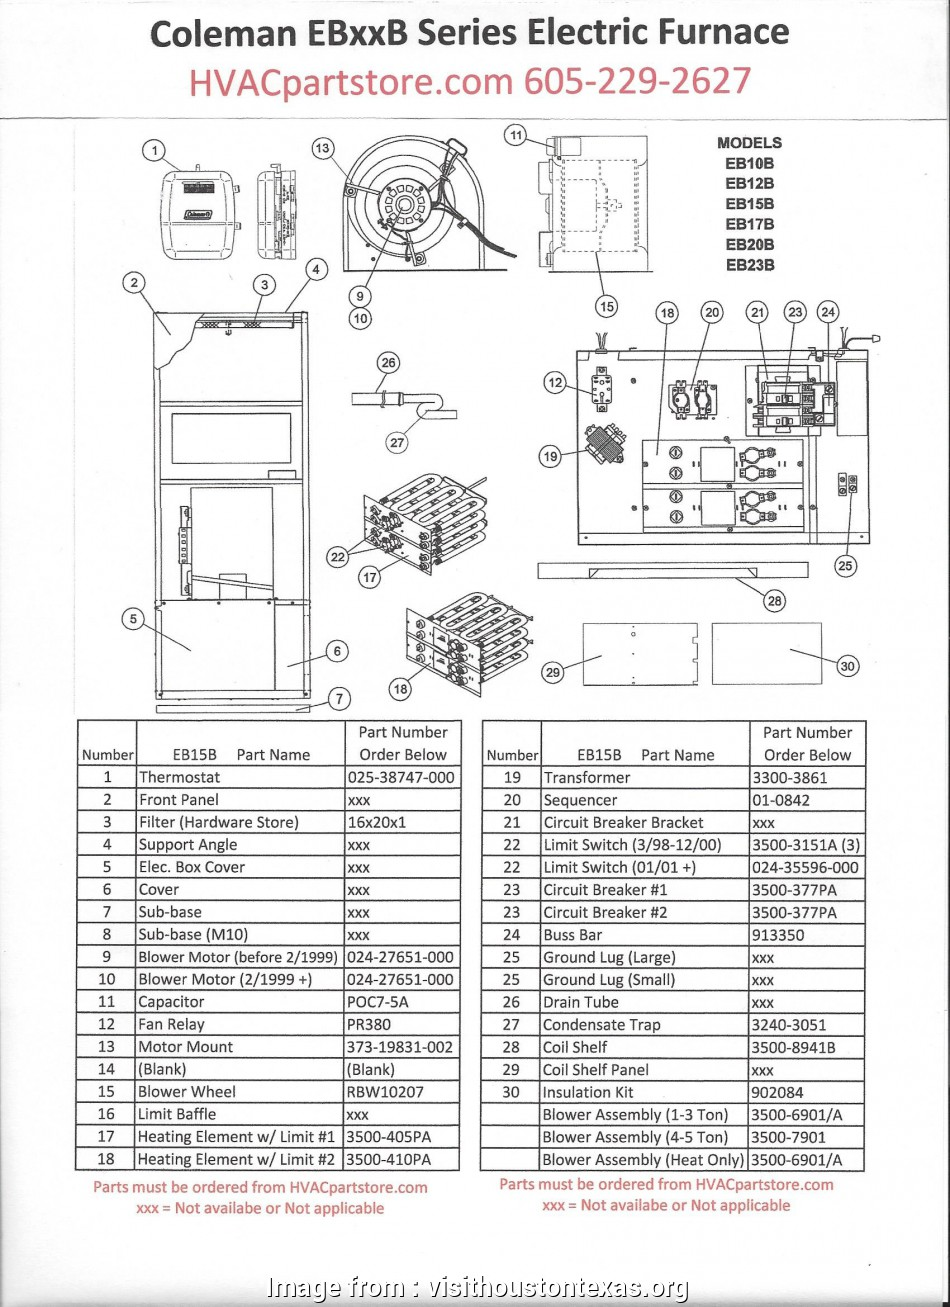 central ac thermostat wiring diagram central ac thermostat wiring diagram  download-suburban rv furnace wiring